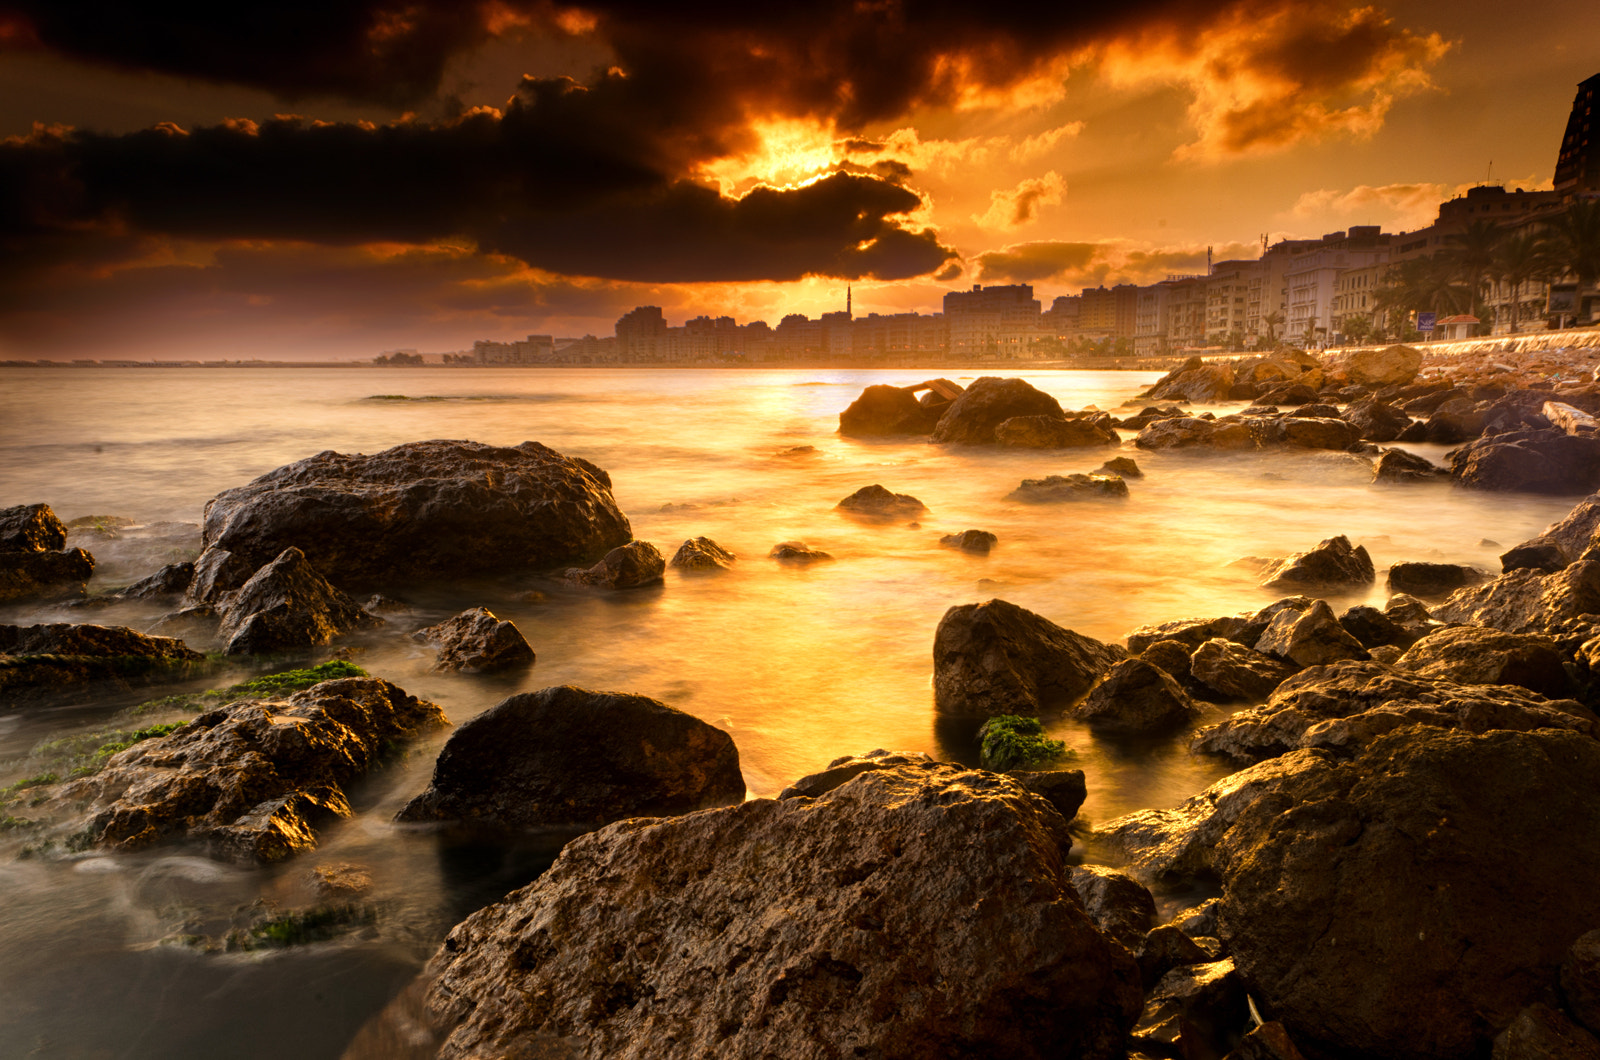 Photograph soothing by Mohamed Attef on 500px